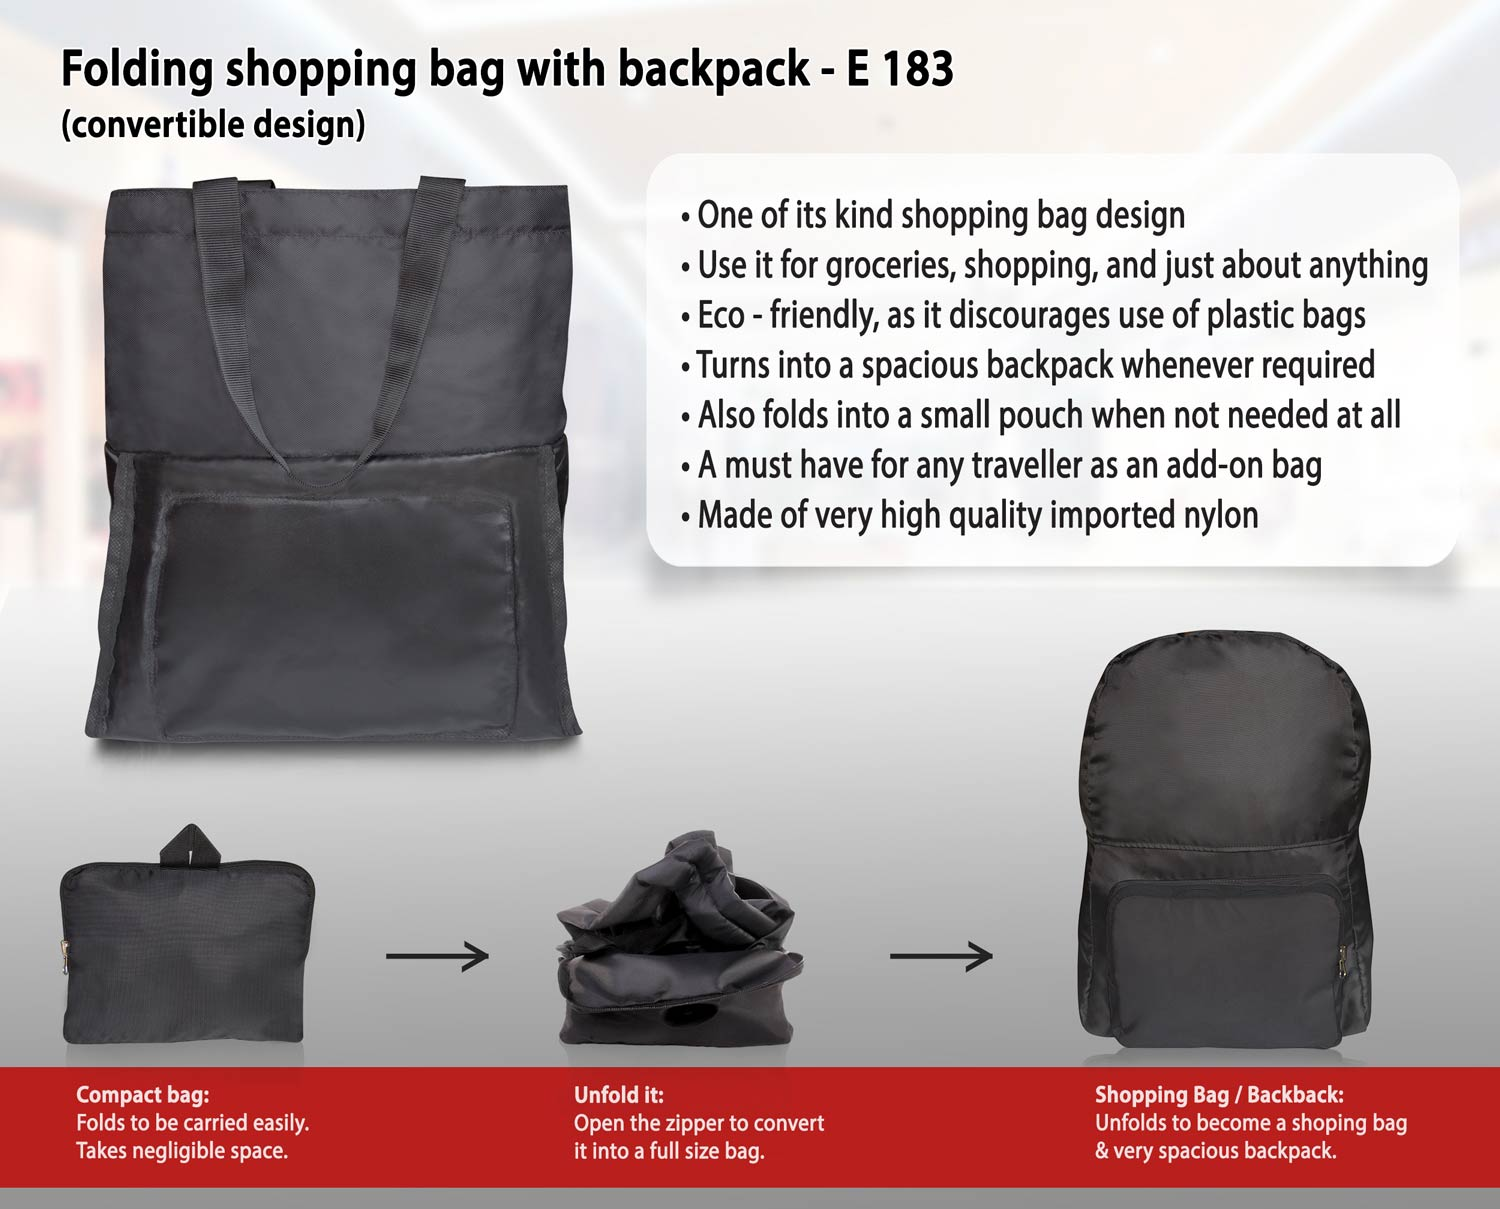 E183 - FOLDING SHOPPING BAG WITH BACKPACK (CONVERTIBLE DESIGN)